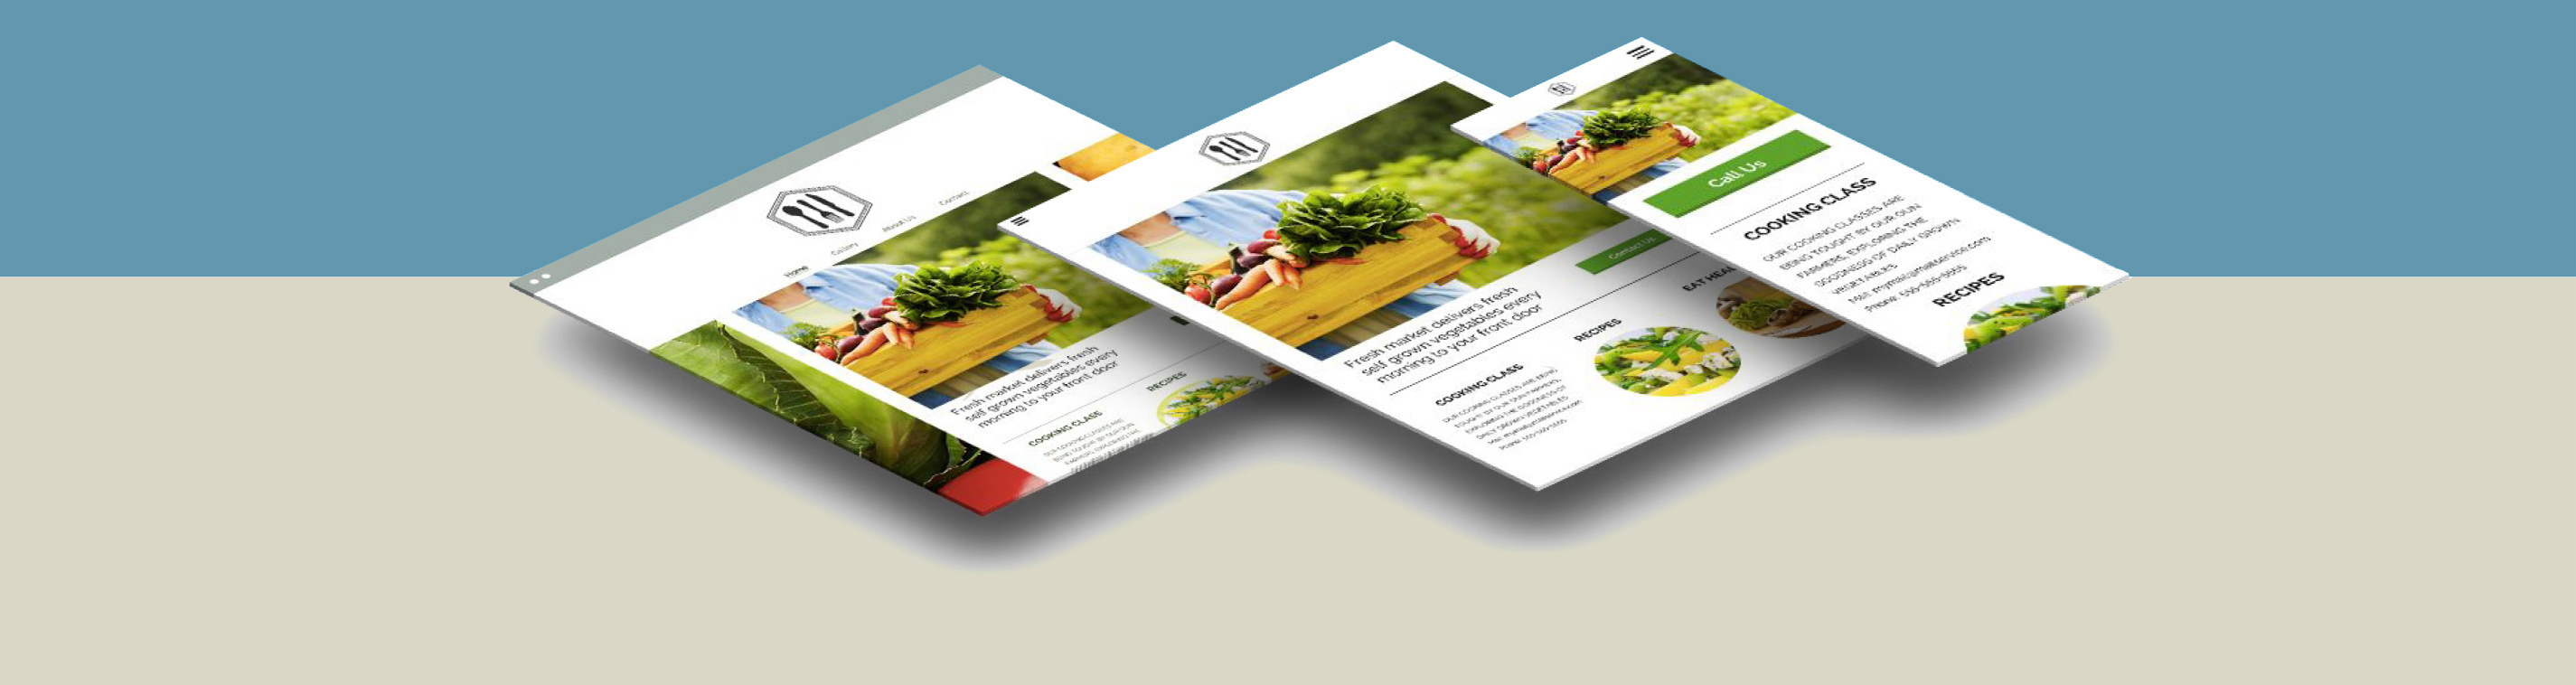 Vermont dynamic website design to fit desktop, tablet and mobile devices.